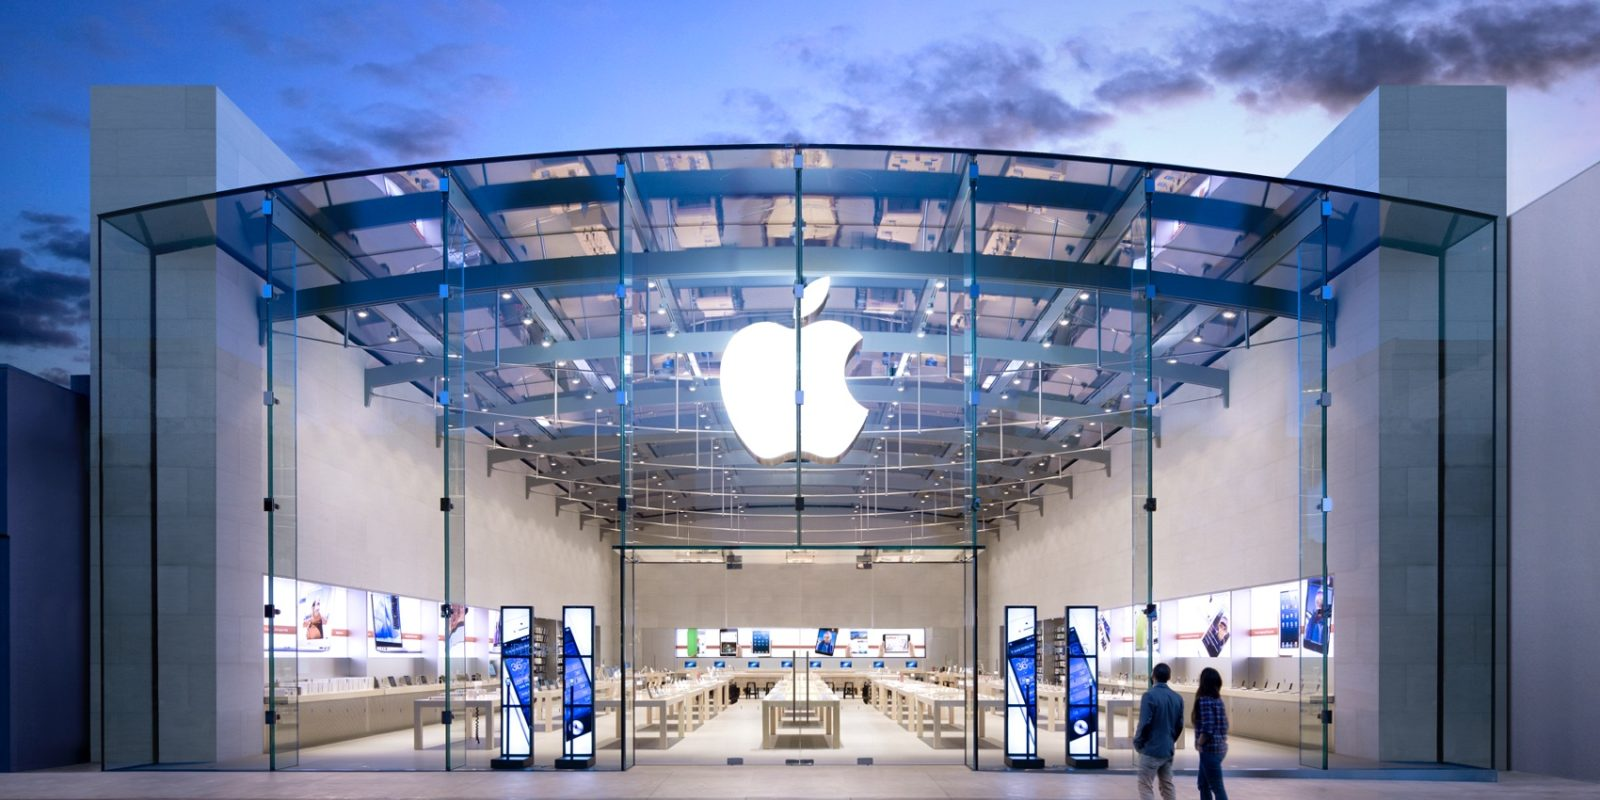 Apple again found to be the world's top retailer in sales per square foot